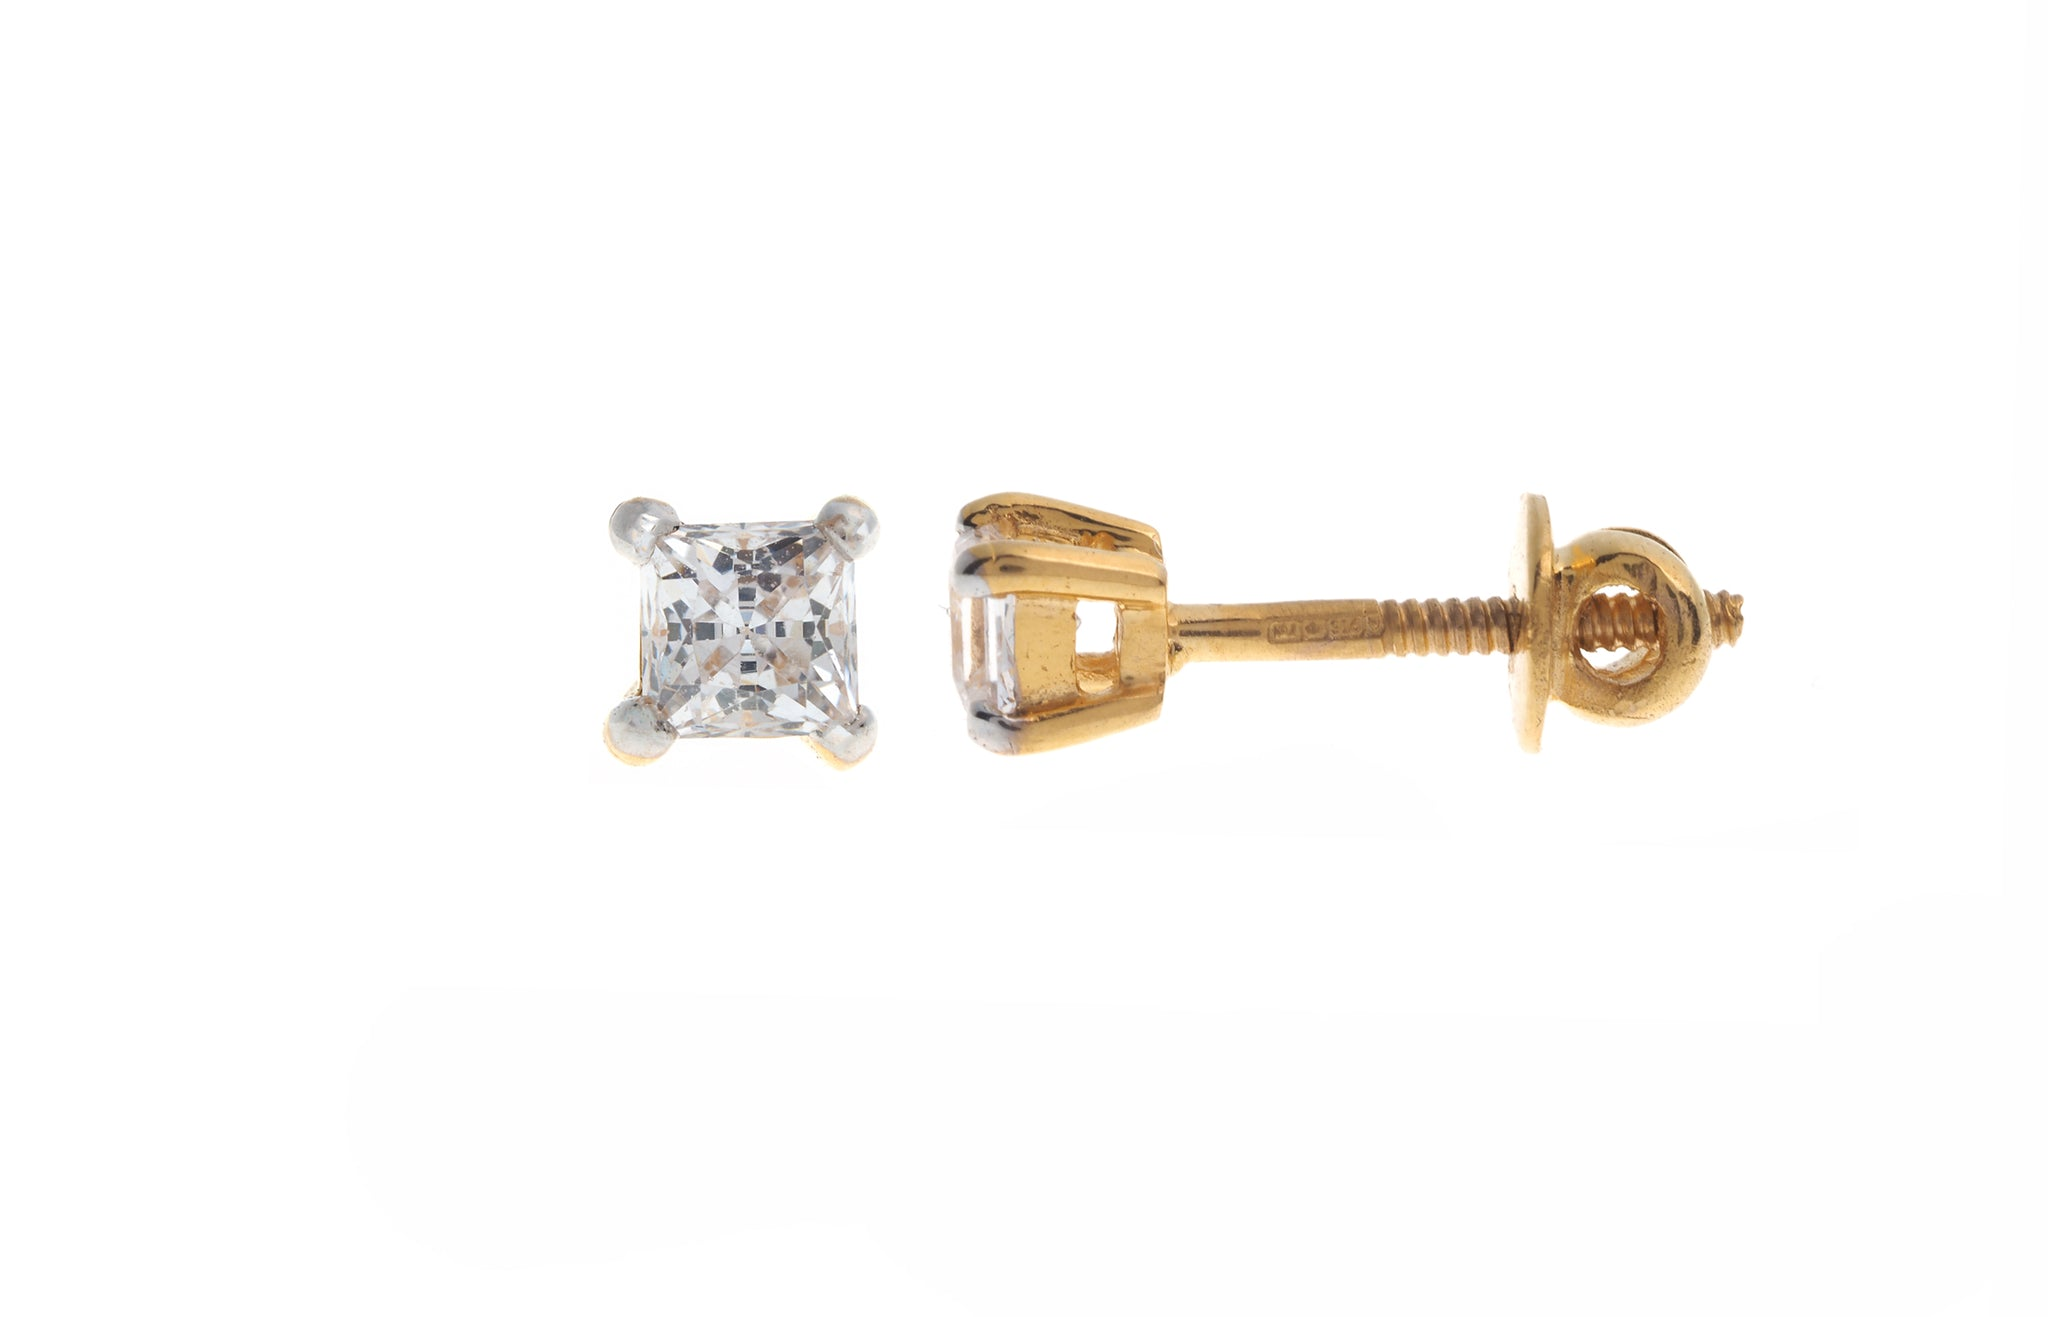 22ct Gold Stud Earrings set with a Swarovski Zirconia (1.56g) PR3MM